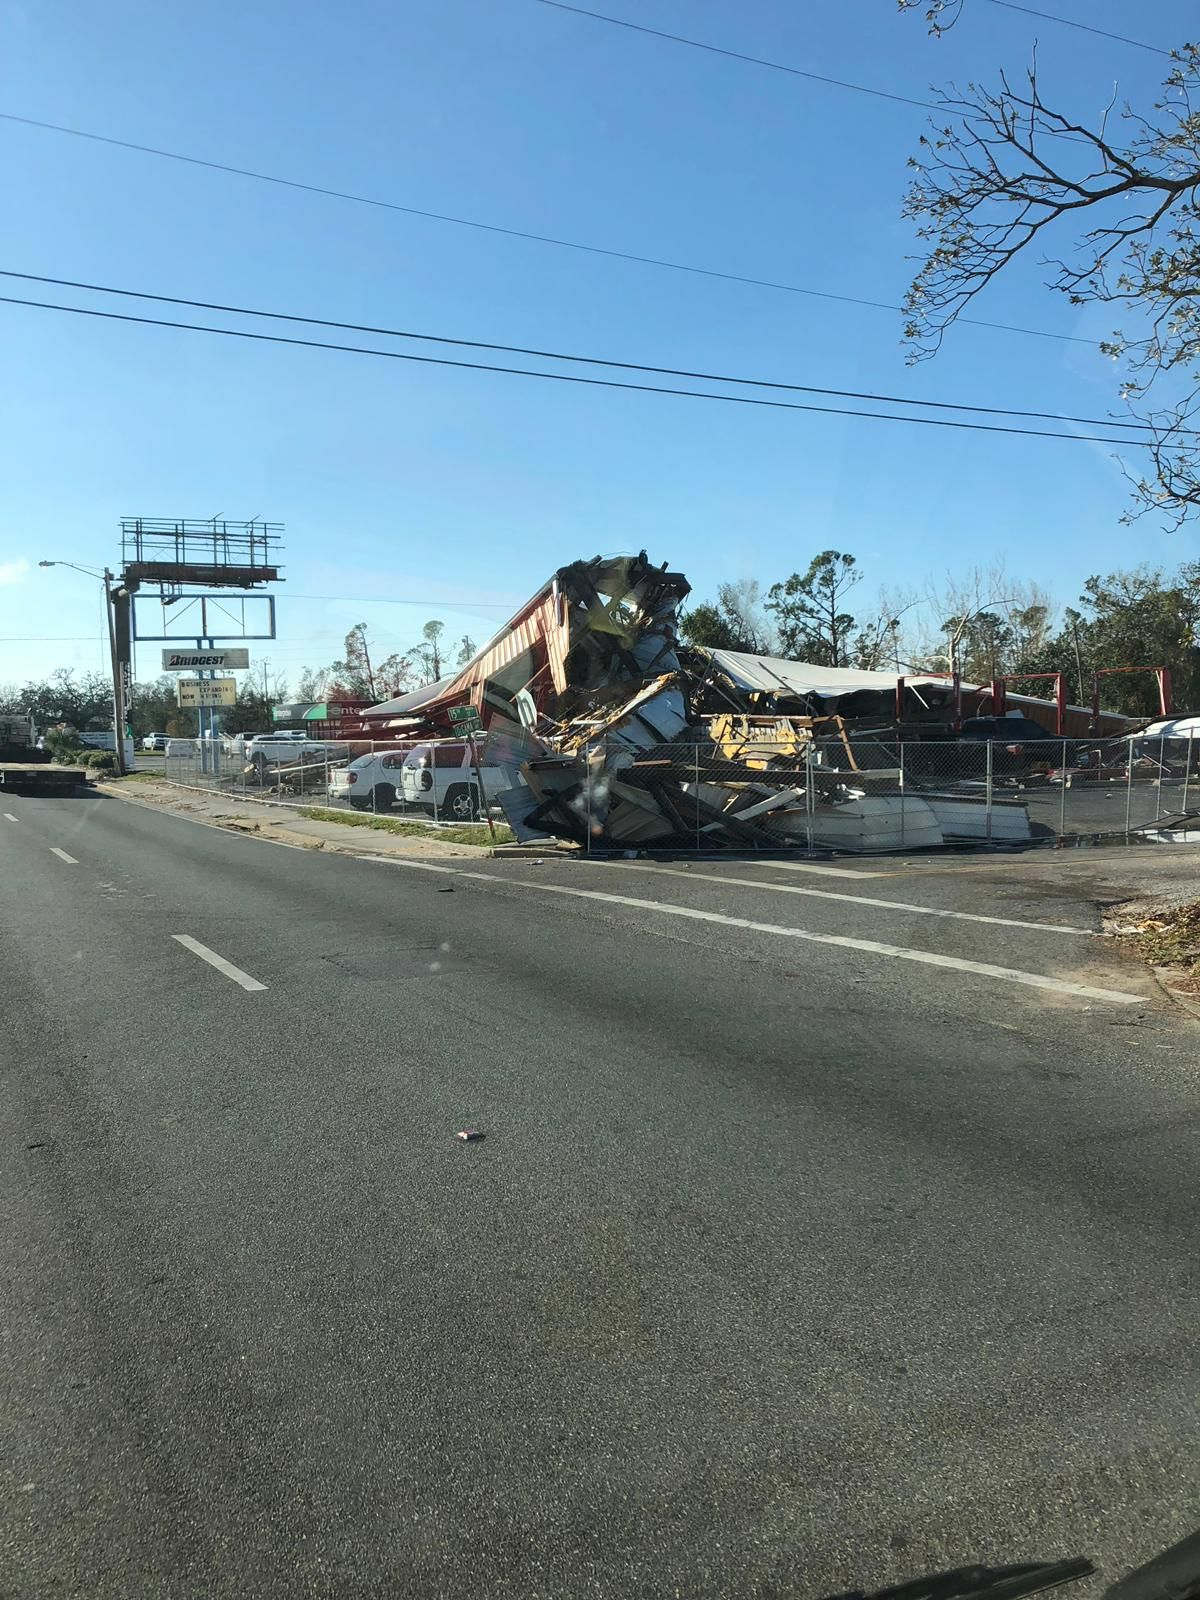 Aftermath From Hurricanemichael In Panama City Beach Florida Call Apex Disaster Specialists If You Have Dama Panama City Panama Panama City Beach Hurricane